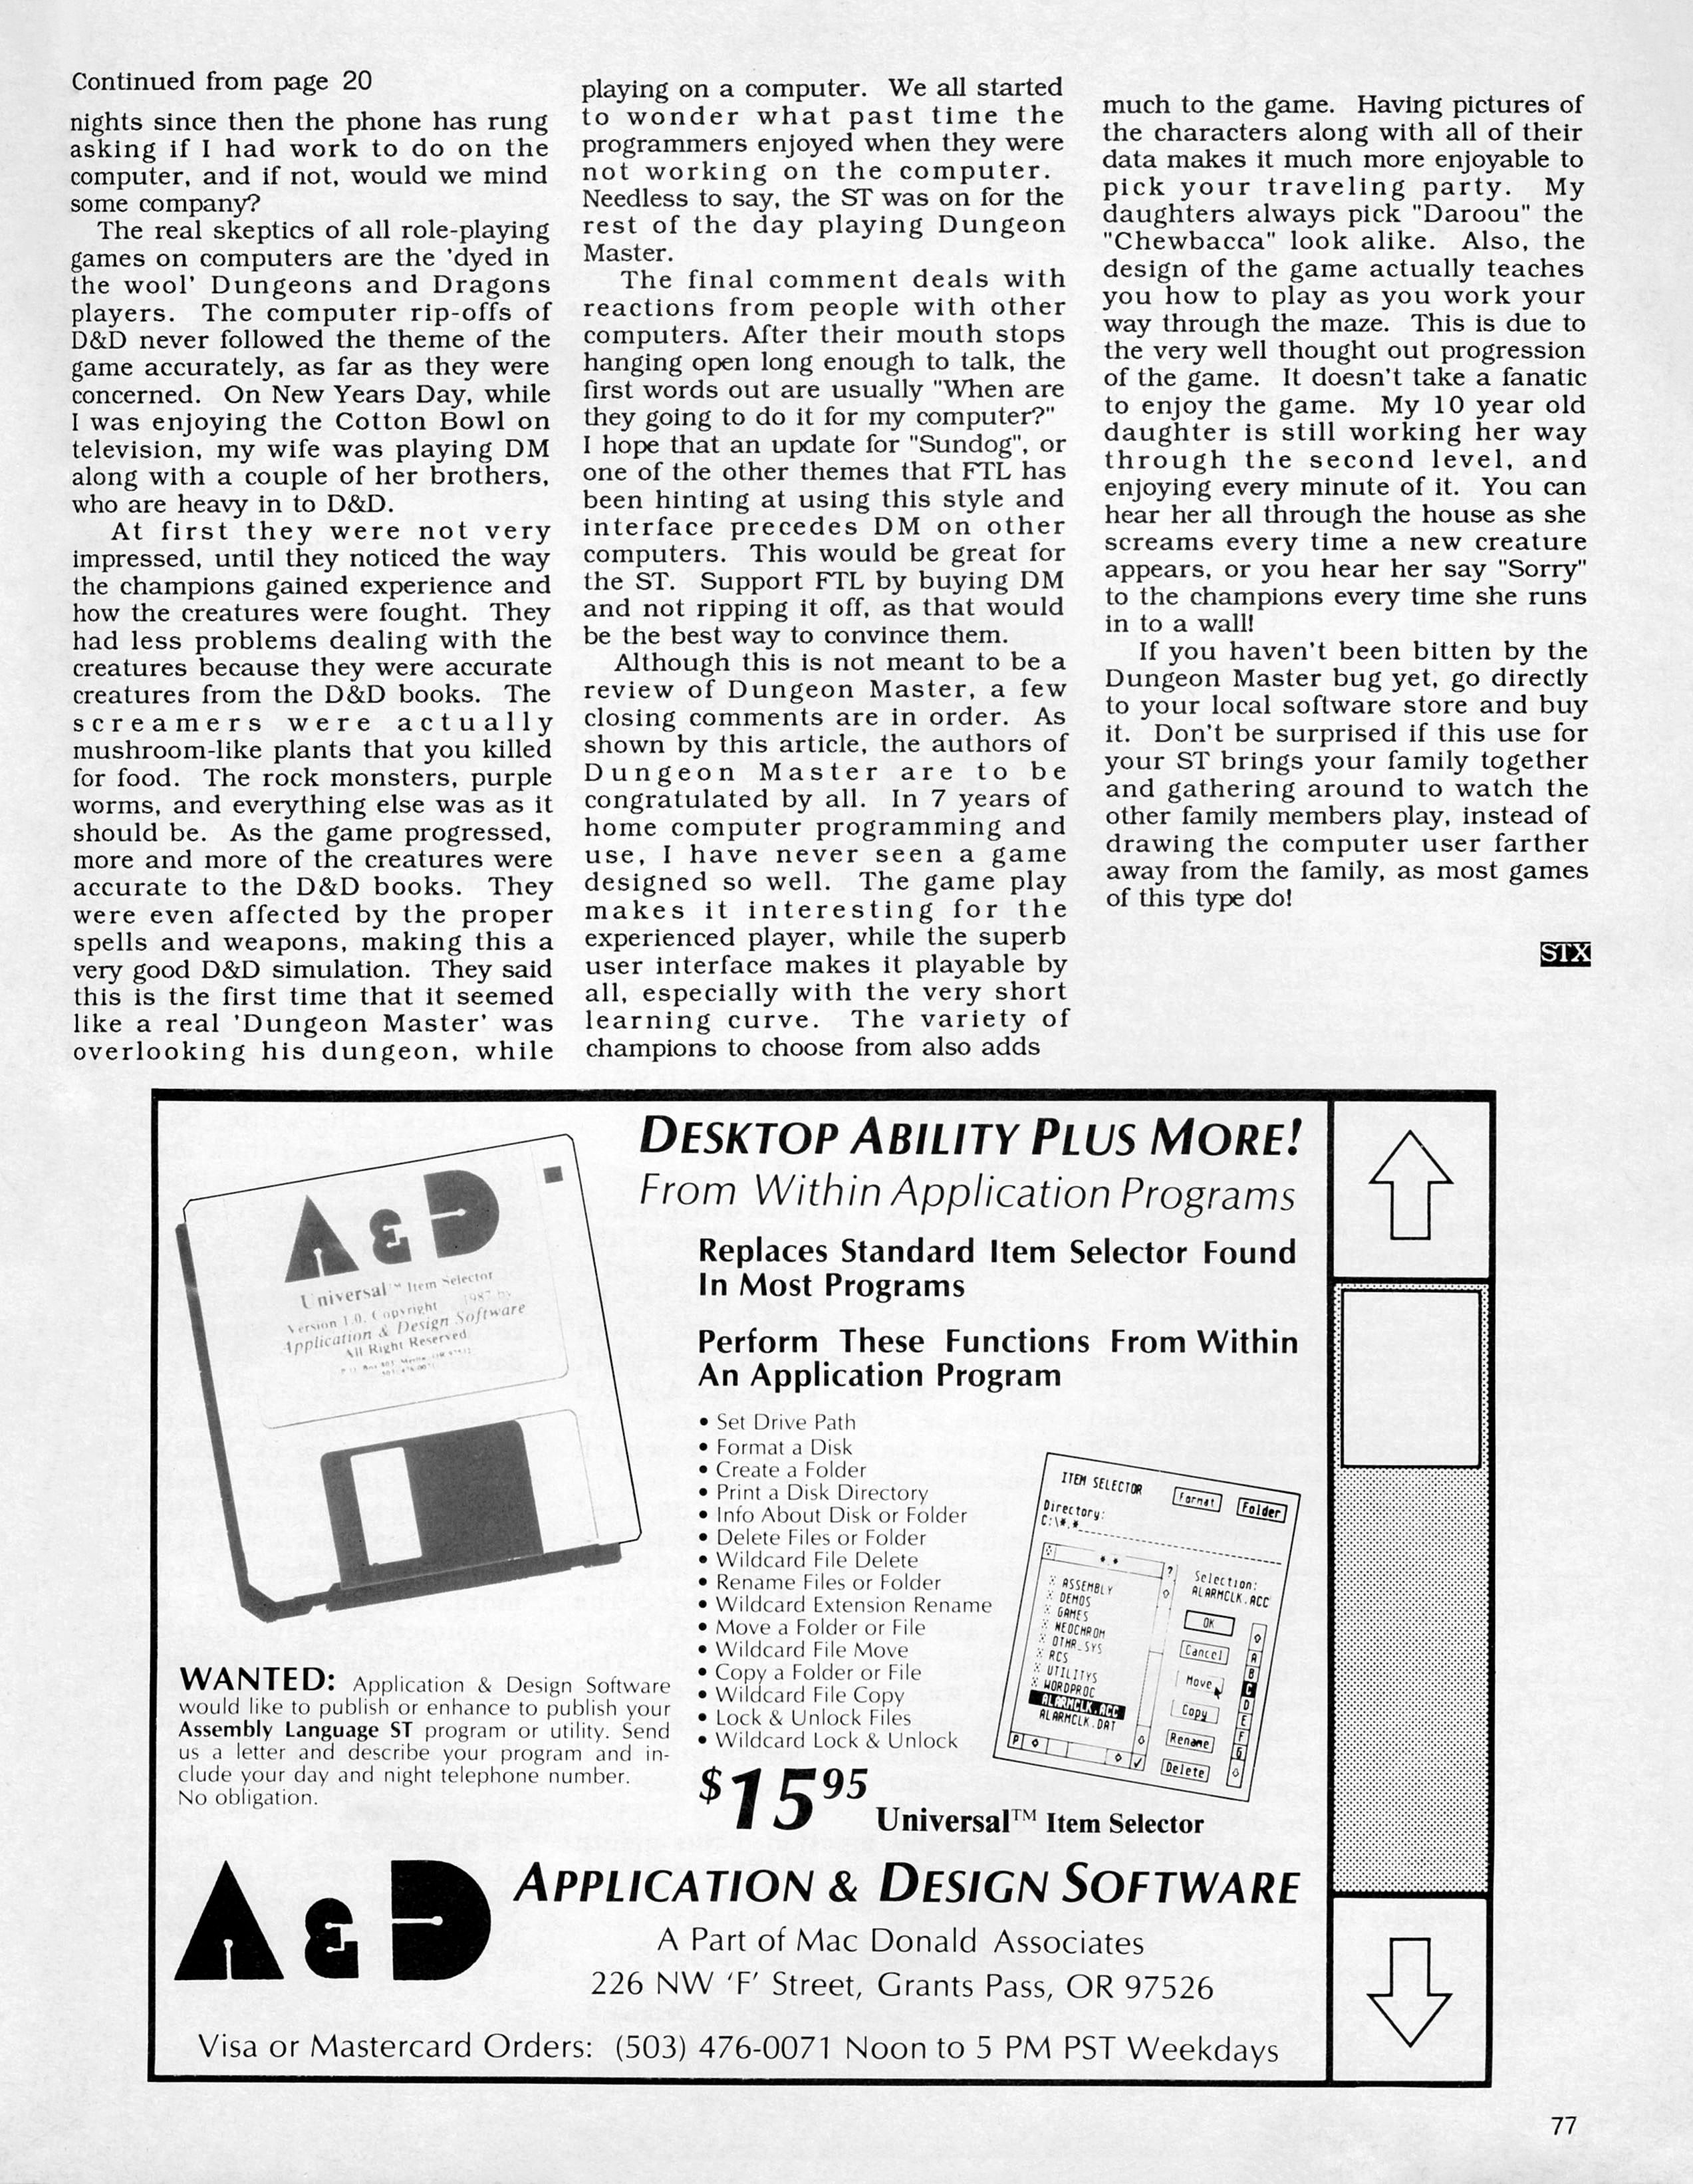 Dungeon Master for Atari ST Review published in American magazine 'ST X-PRESS', Vol 2 No 2 March 1988, Page 77